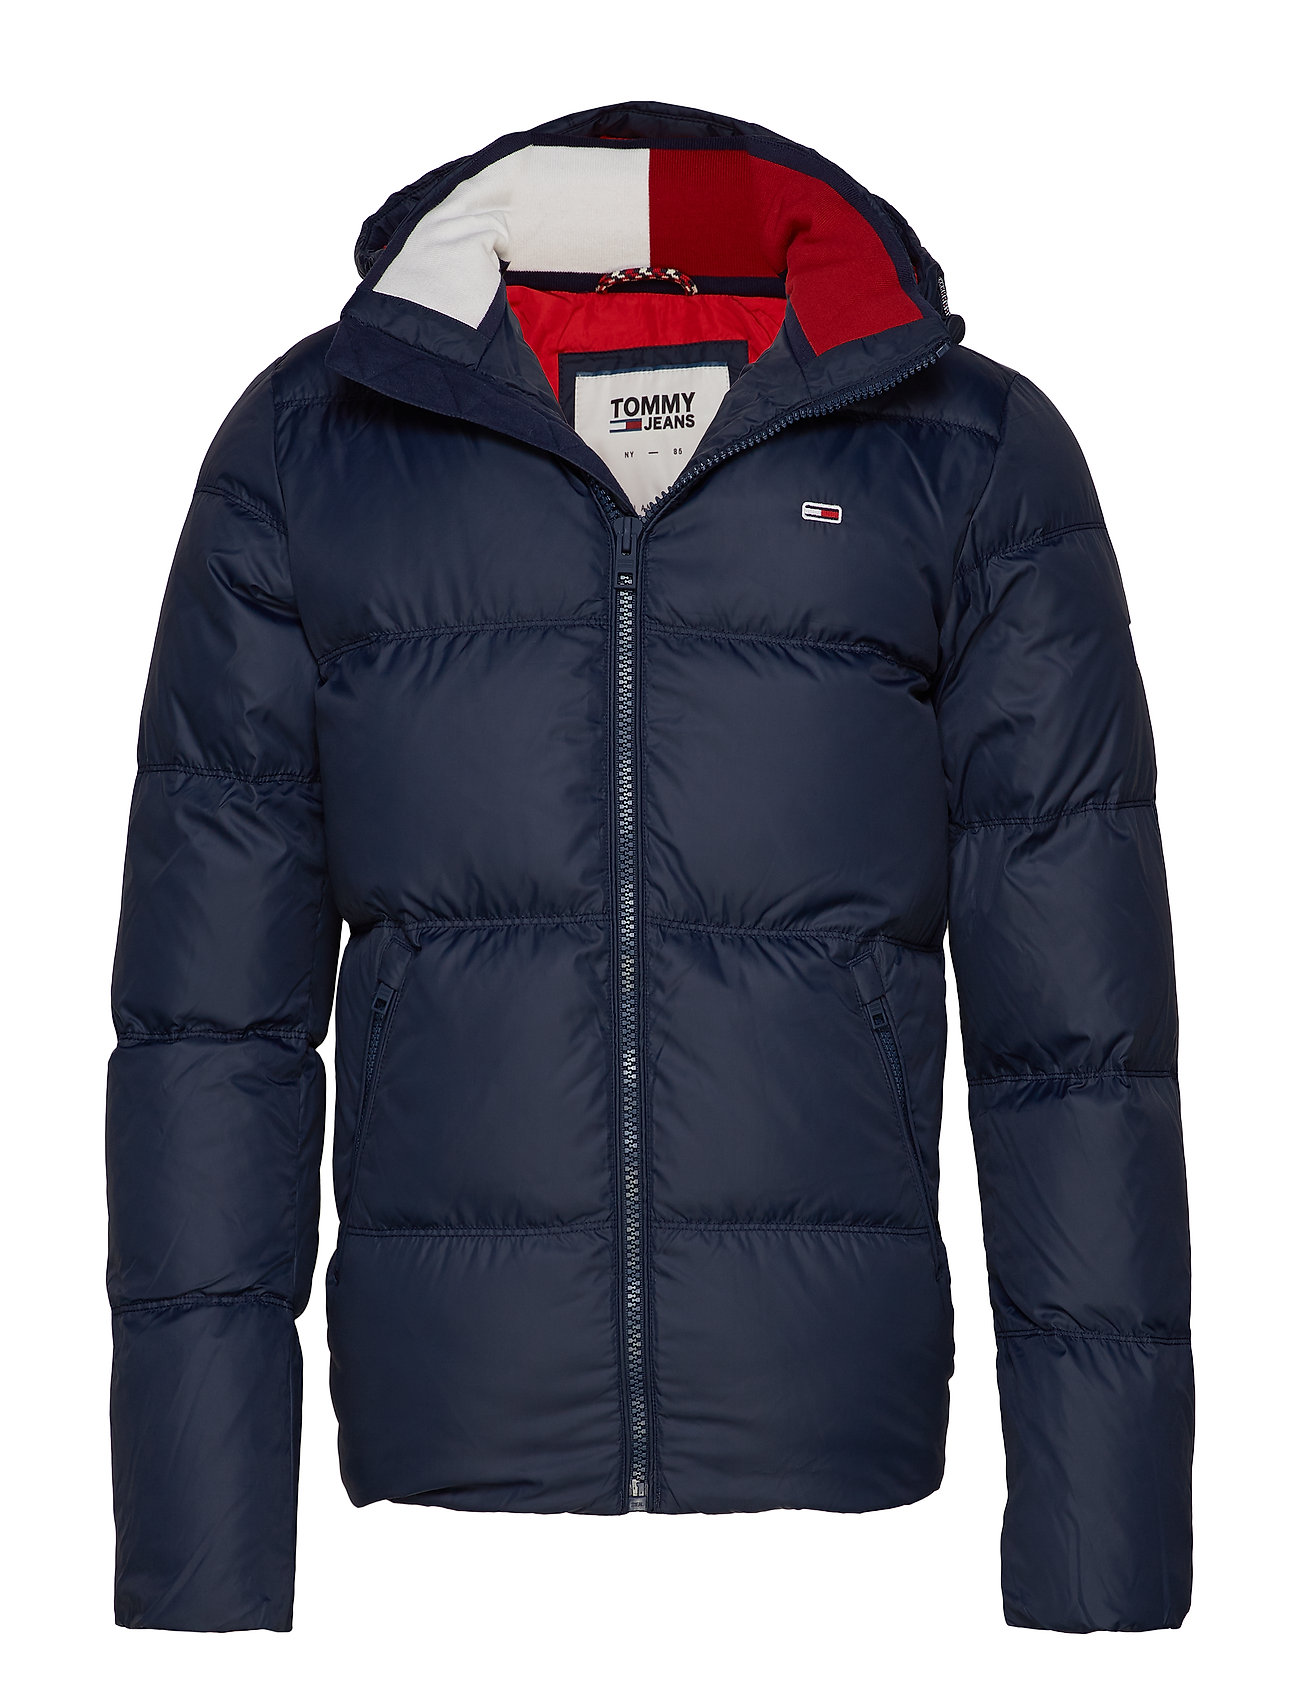 Tommy Jeans TJM ESSENTIAL DOWN JACKET - BLACK IRIS